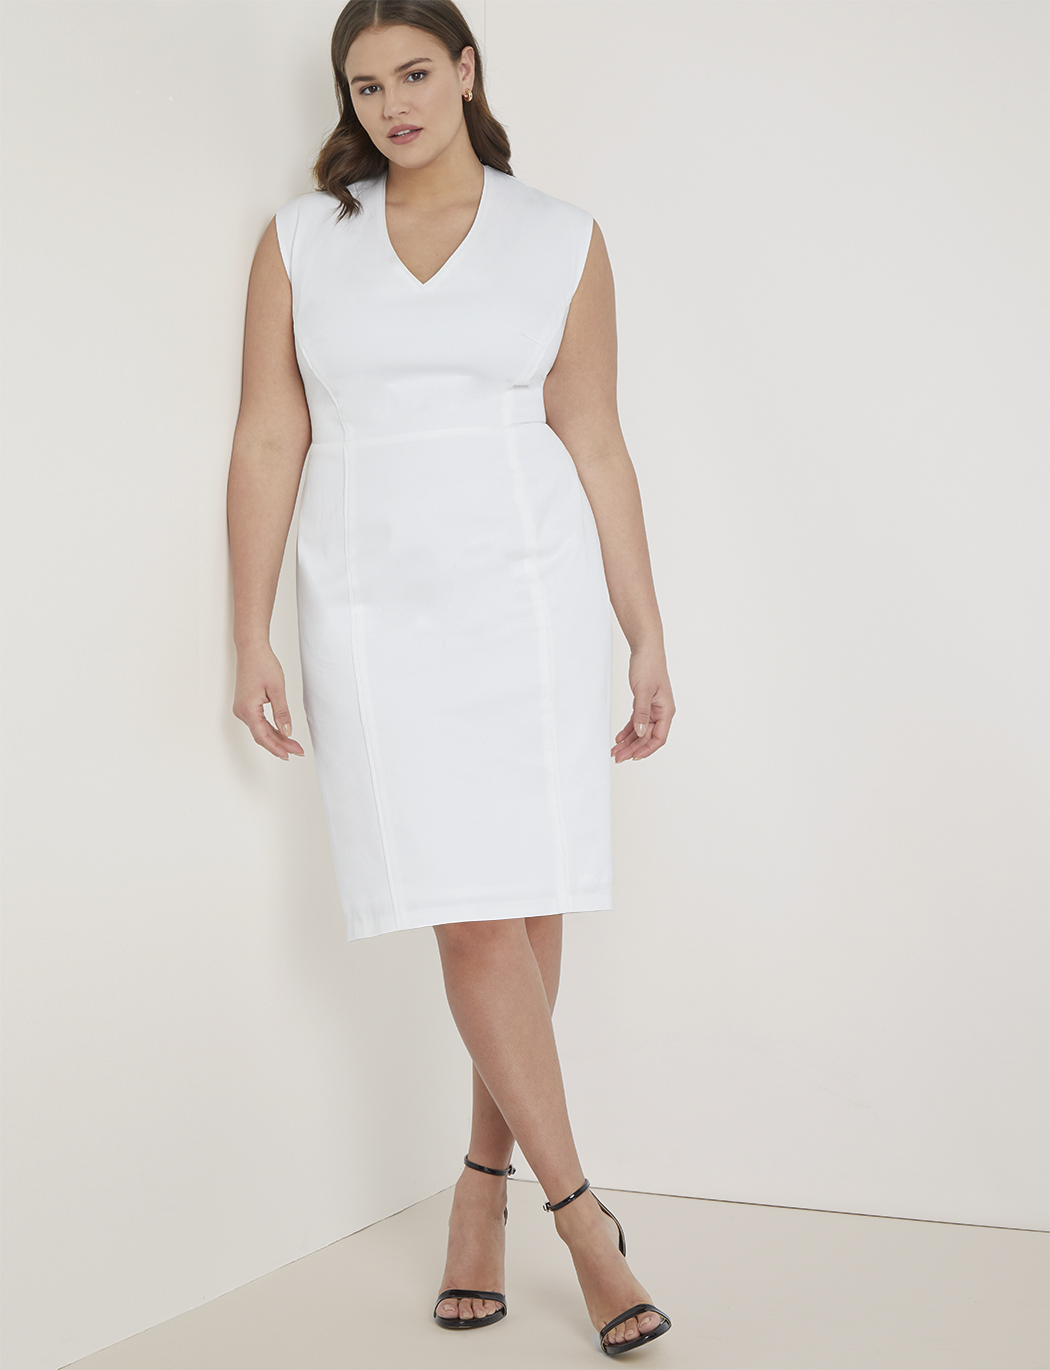 Premier Work Dress with Piping | Women\'s Plus Size Dresses | ELOQUII